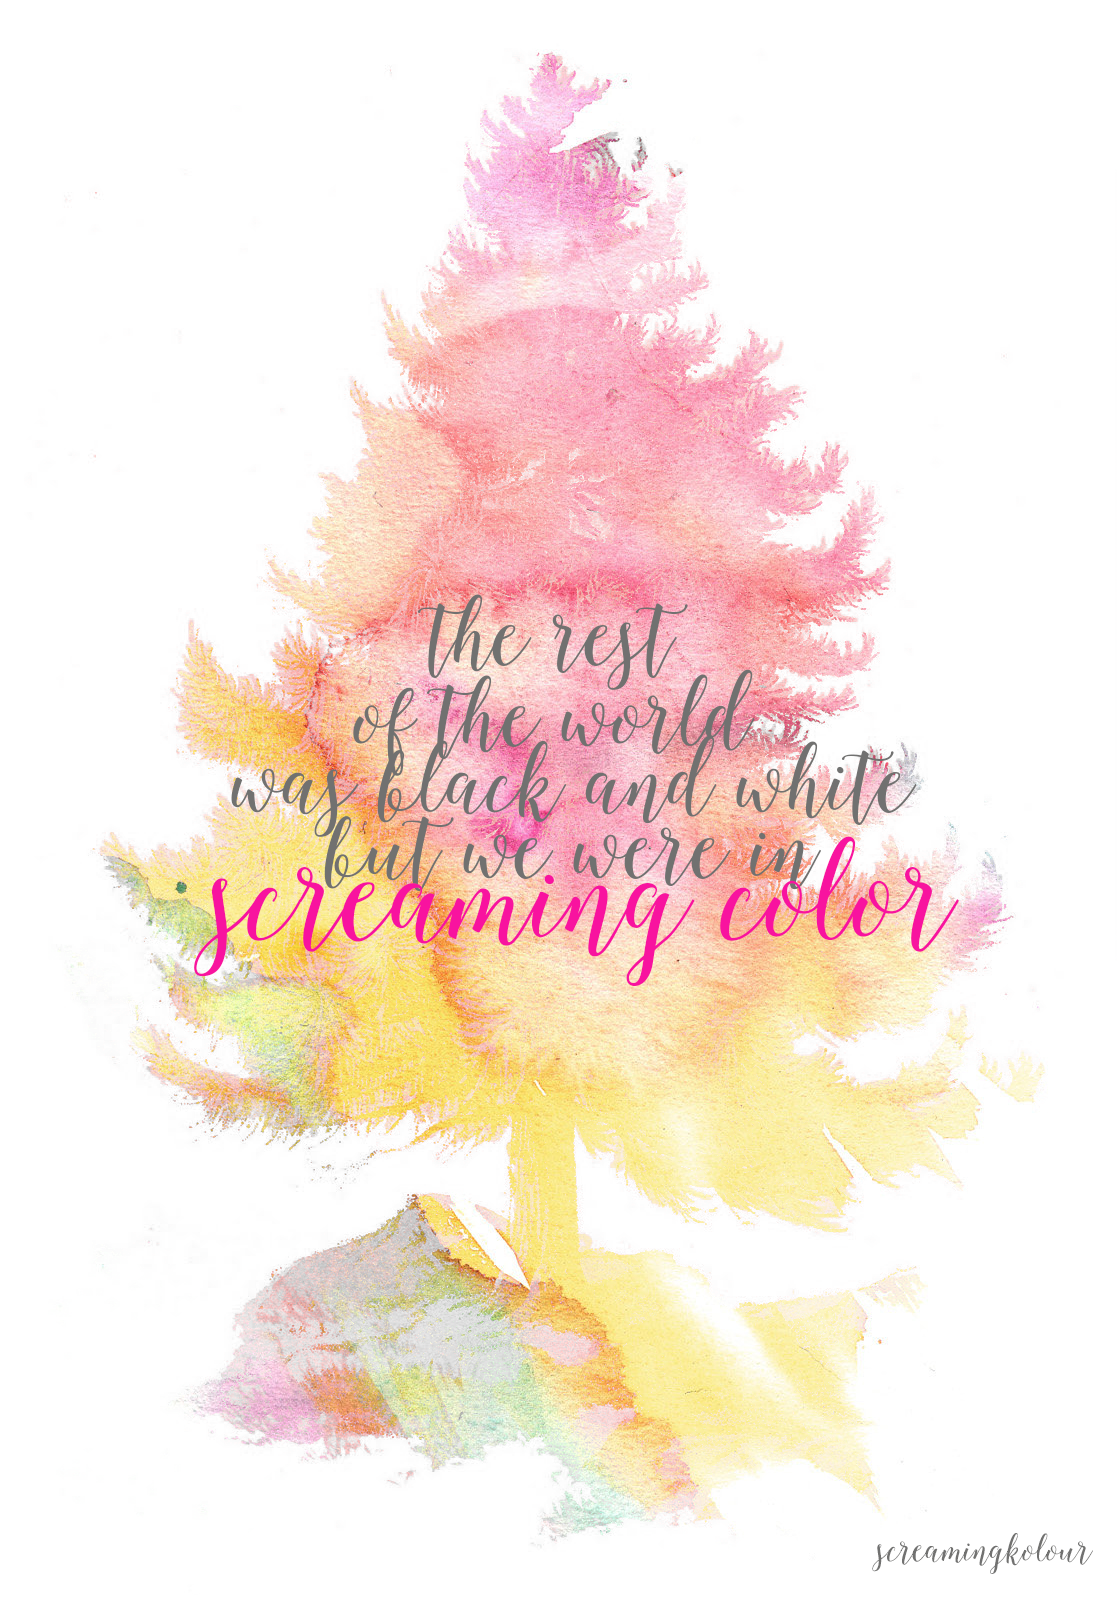 Iphone wallpaper tumblr taylor swift - The Rest Of The World Was Black And White But We Were In Screaming Color Taylor Swift Out Of The Woods Lyrics Illustration By Screamingkolour